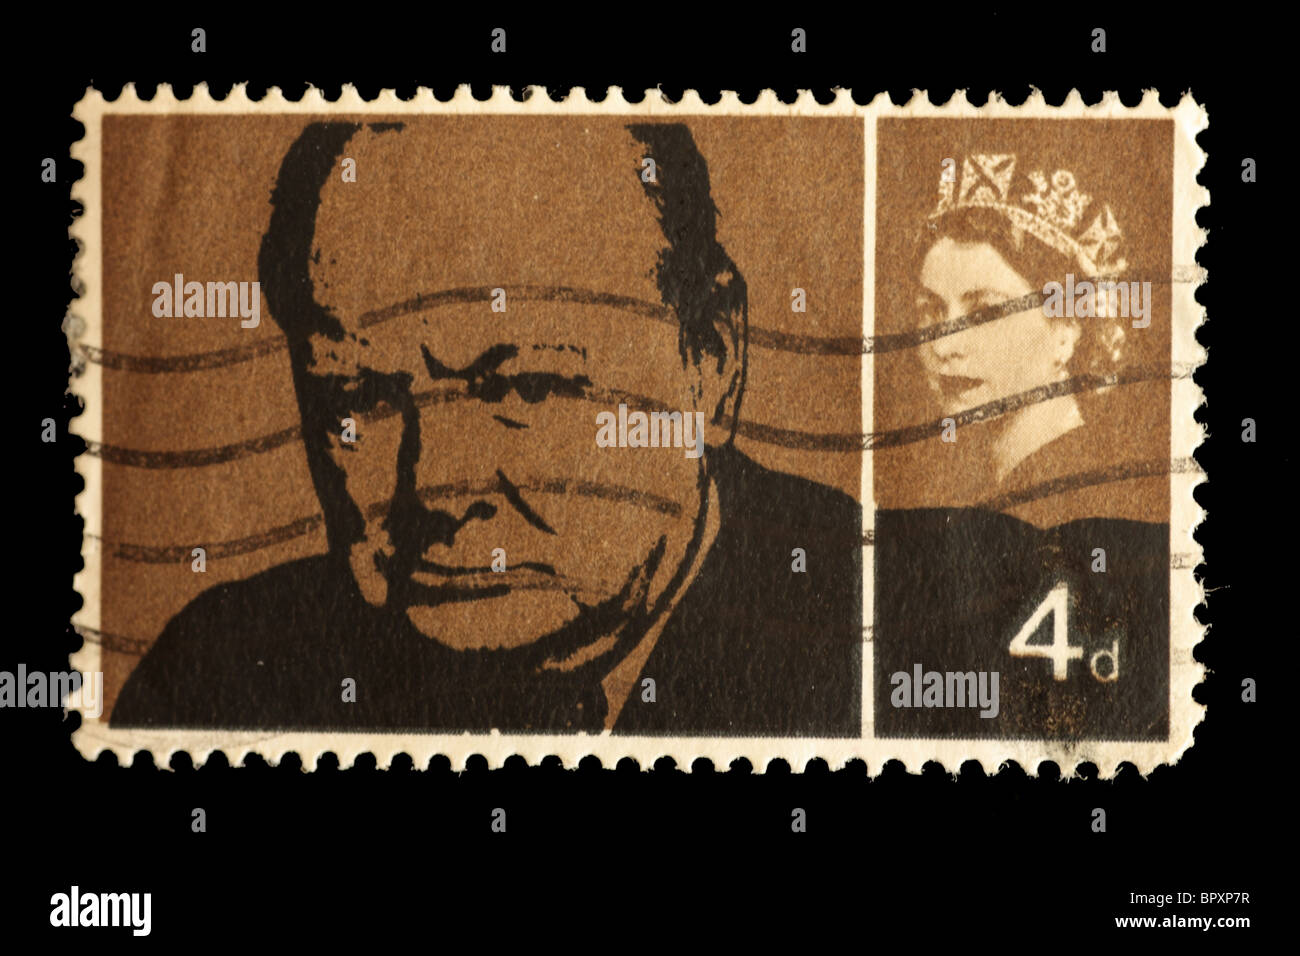 Sir Winston Churchill commemoration Stamp 1965 used - Stock Image